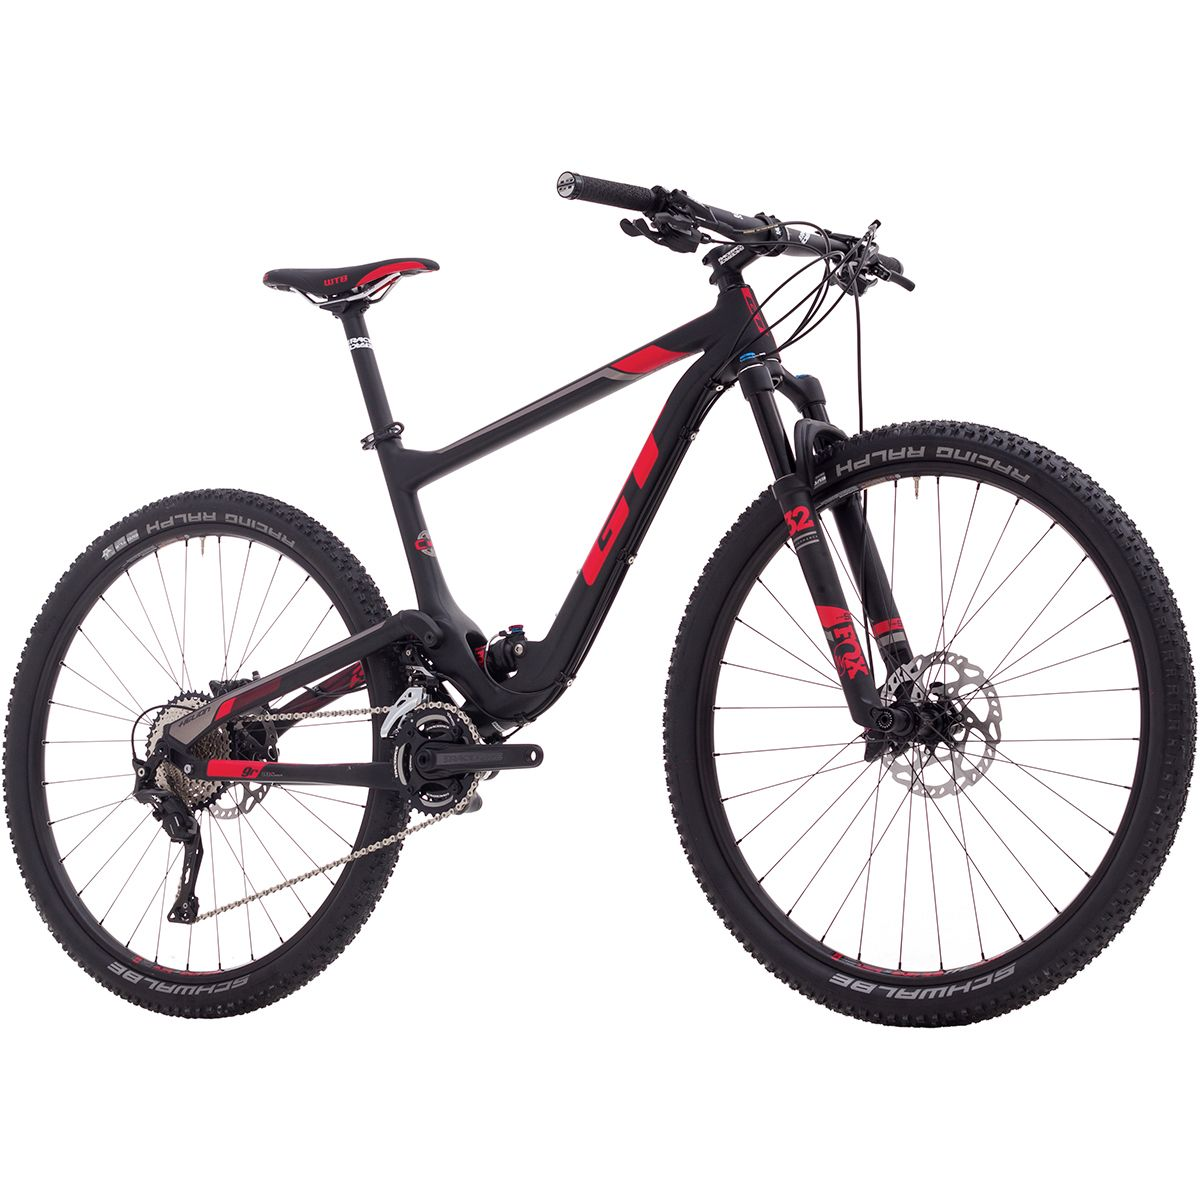 Gt Helion Carbon Expert 9r Complete Mountain Bike 2017